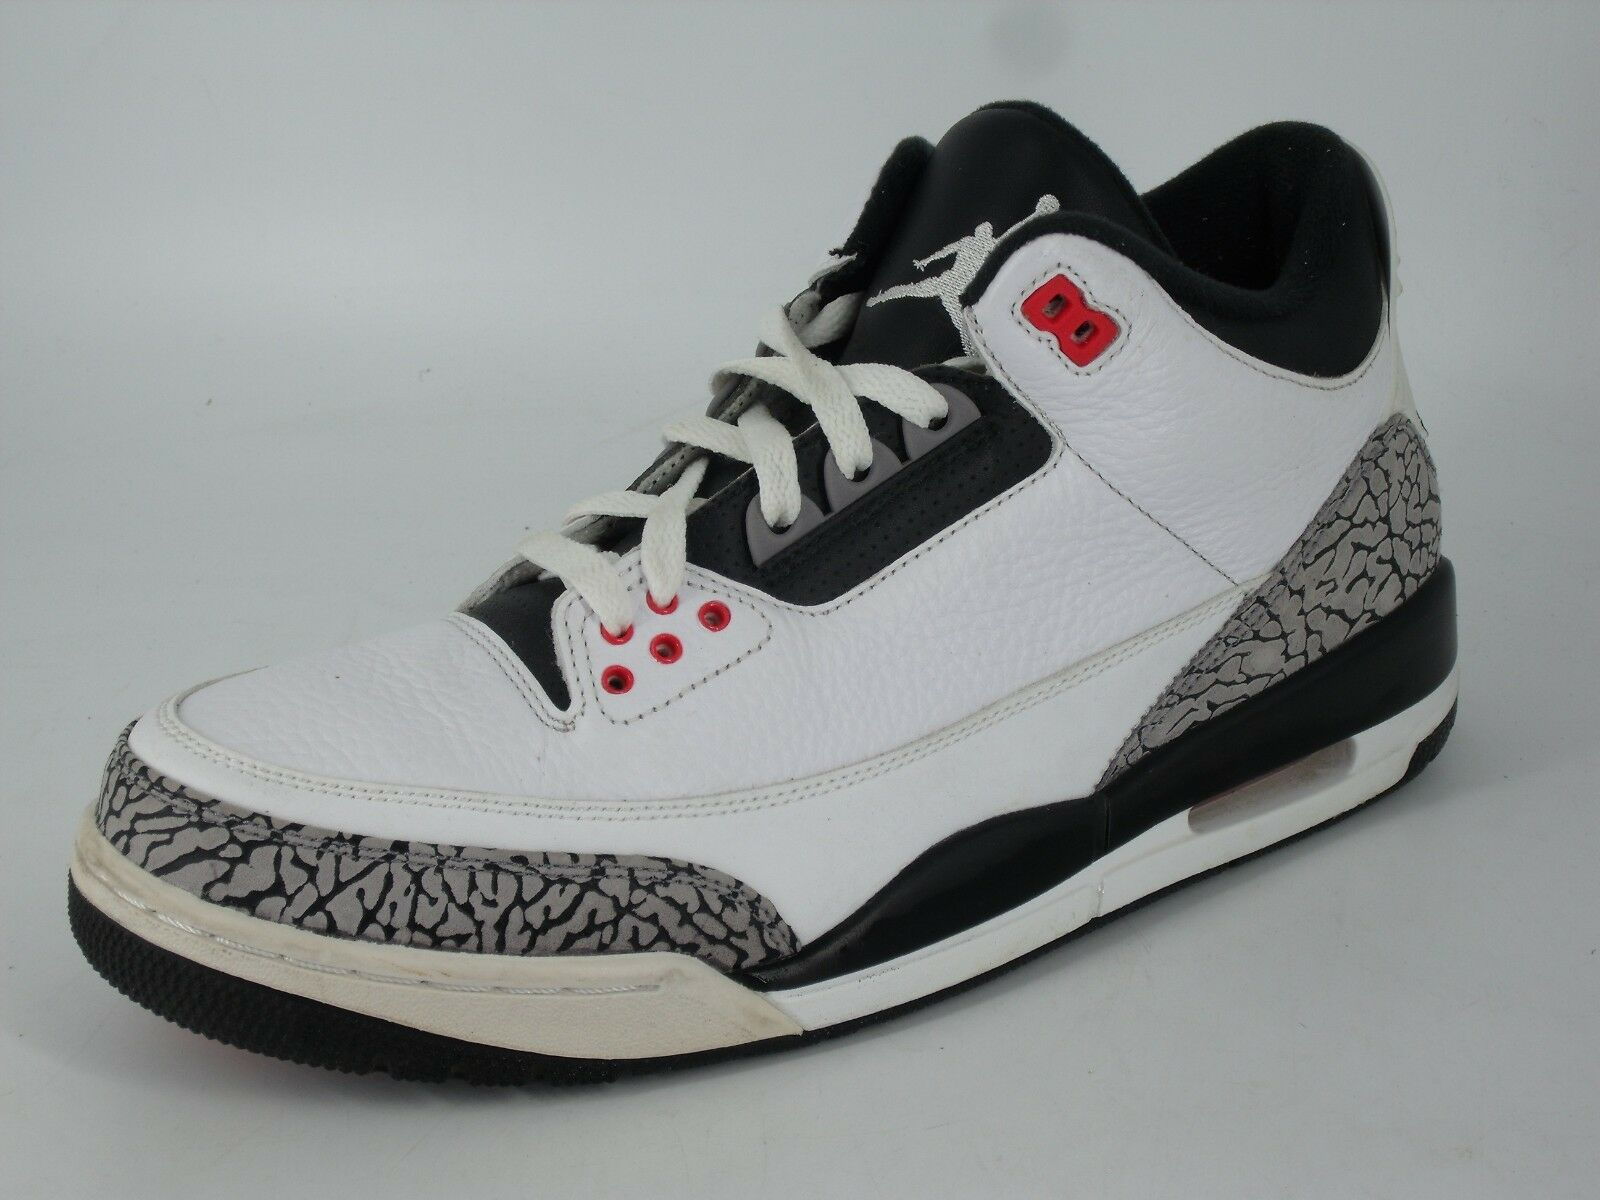 JORDAN 3 RETRO  INFRArojo AIR 23  Alta Top's Talla NH092 mm 01